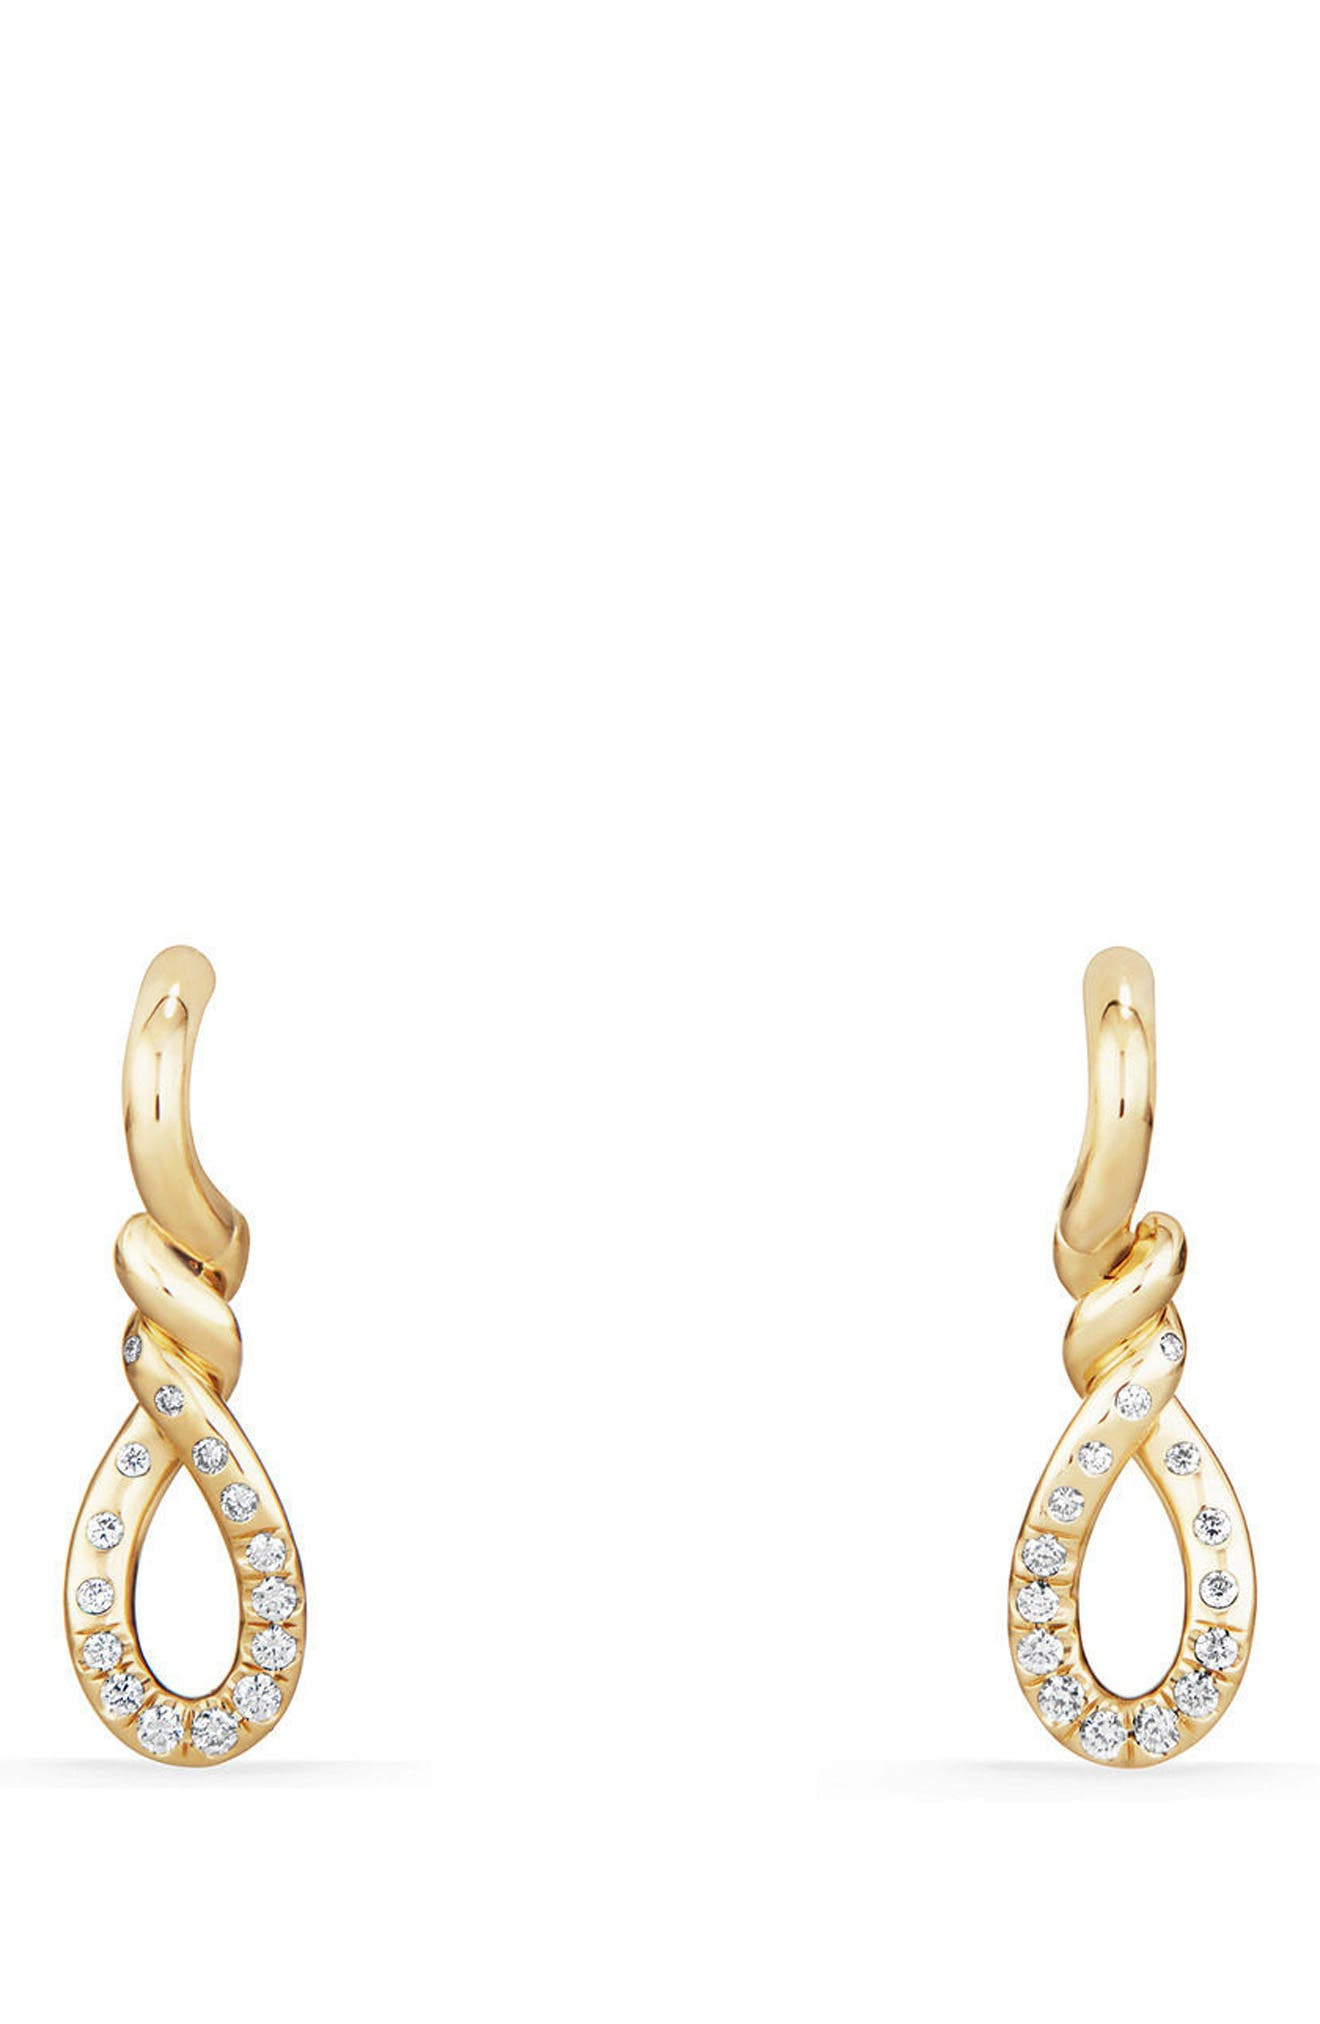 Continuance Drop Earrings in 18K Gold with Diamonds,                             Main thumbnail 1, color,                             YELLOW GOLD